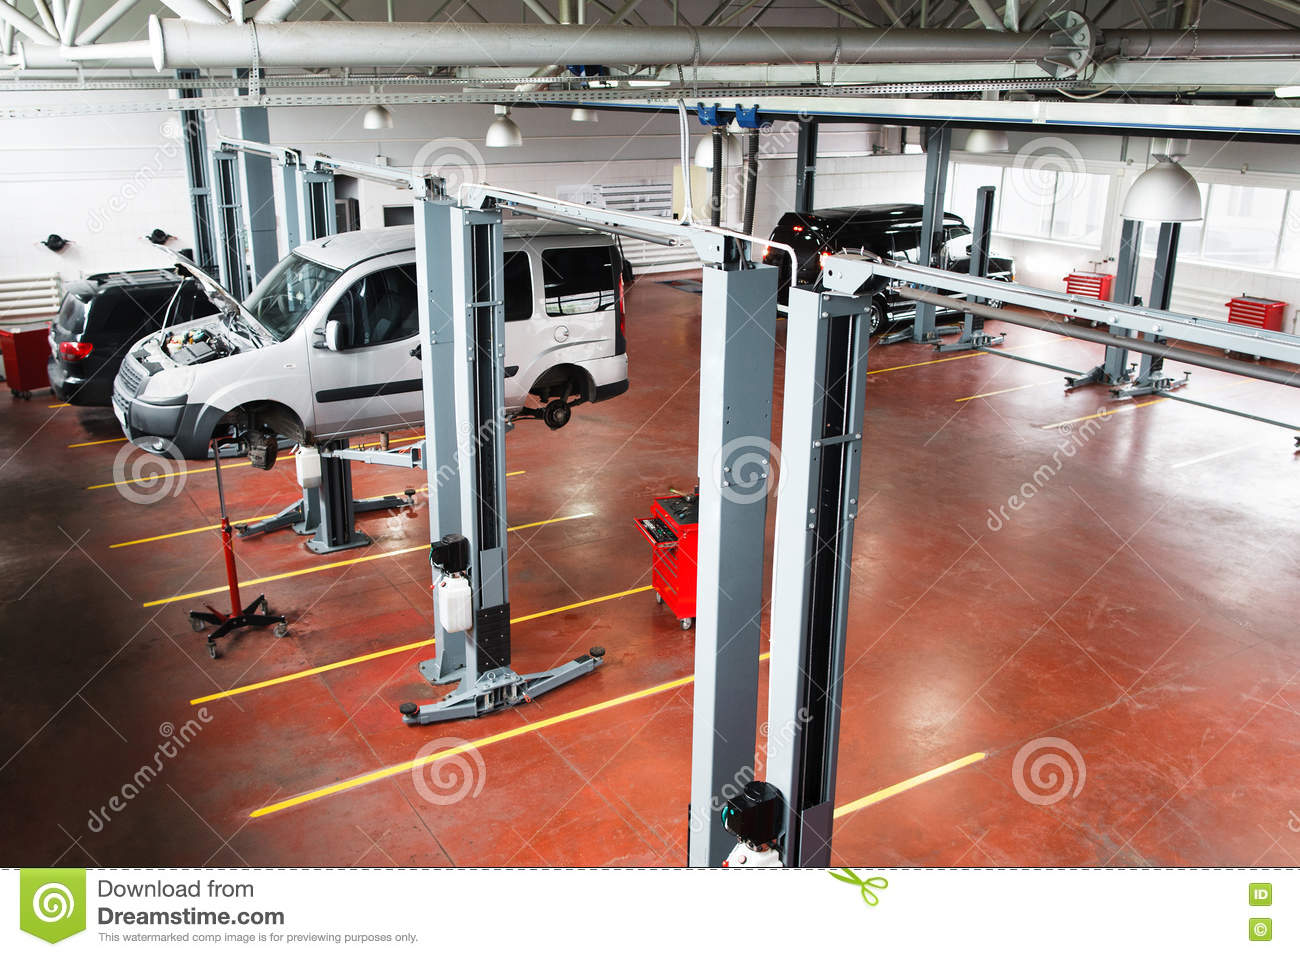 Garage Gym With Car Garage With Cars On Service Or Repairing Top View Stock Image